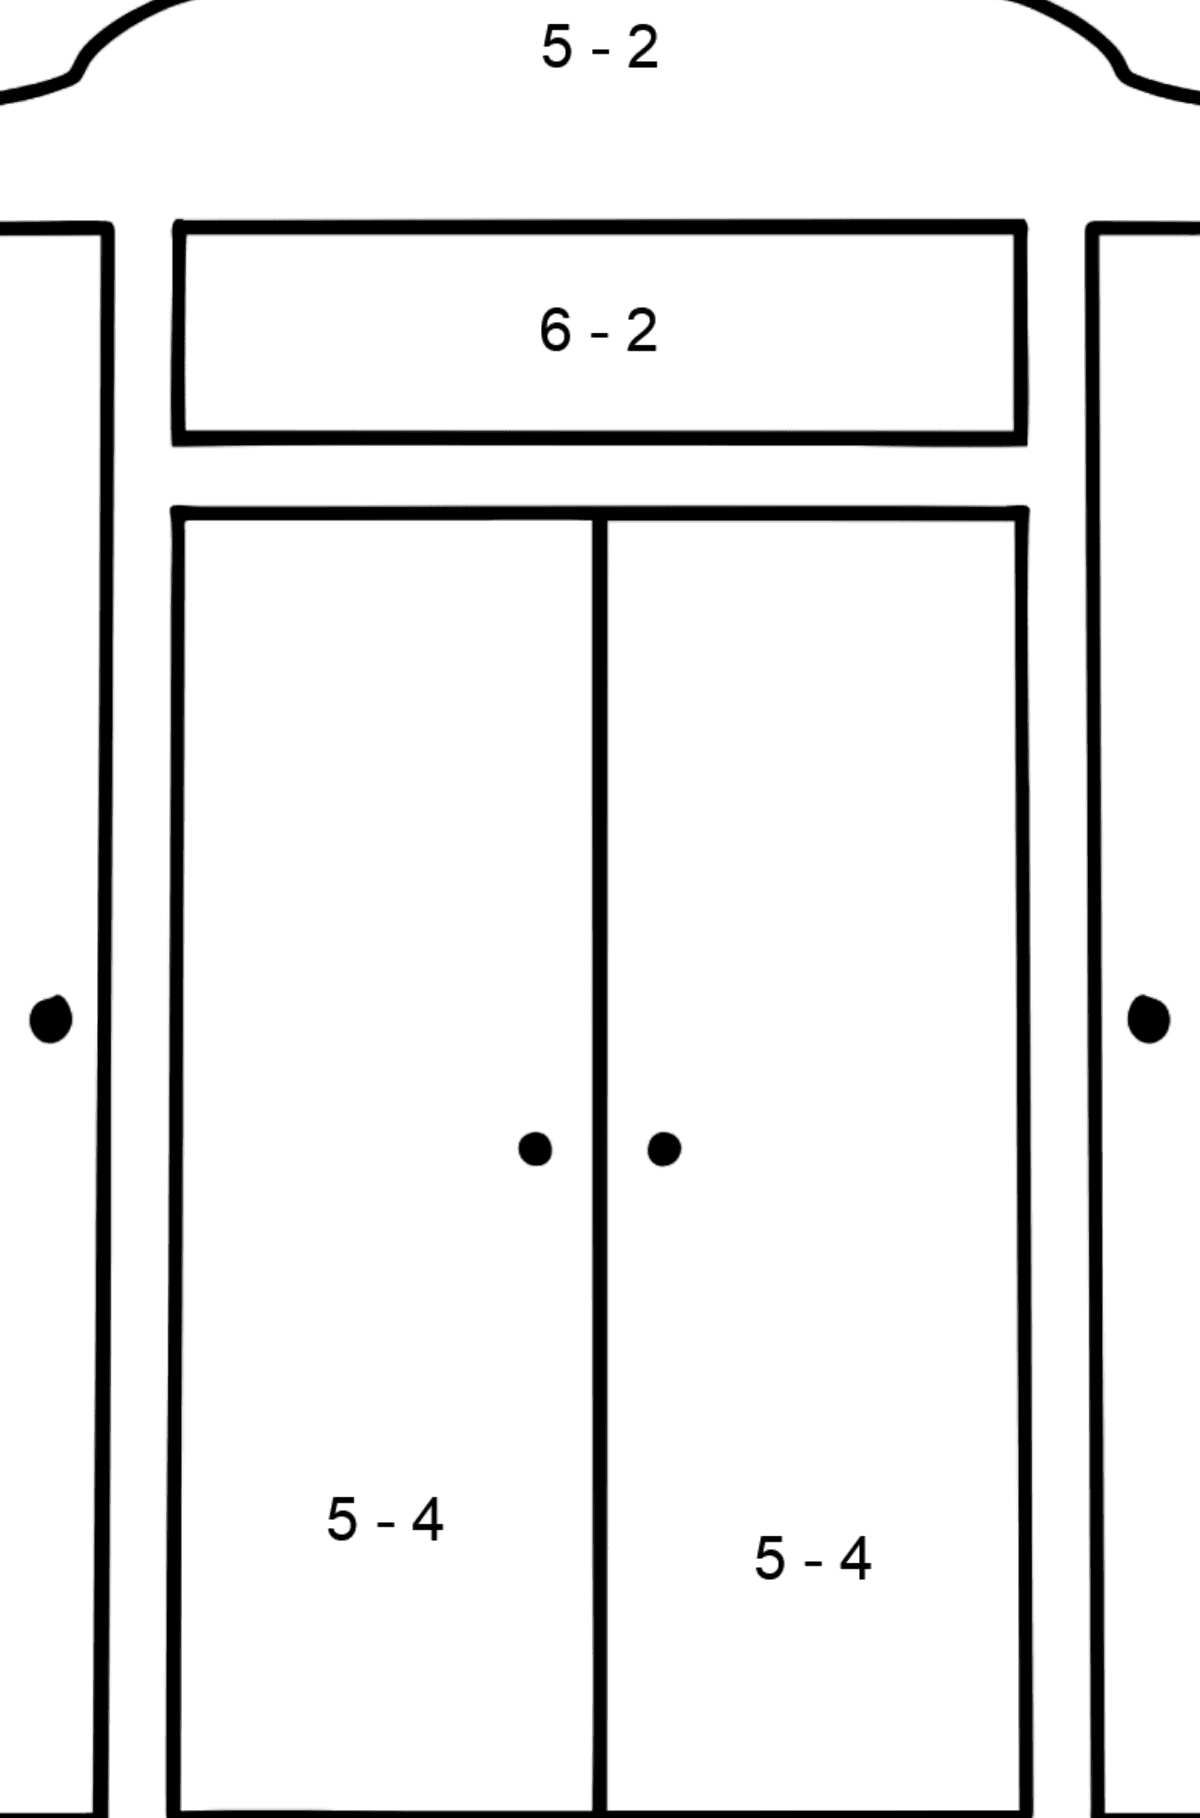 Wardrobe coloring page - Math Coloring - Subtraction for Kids